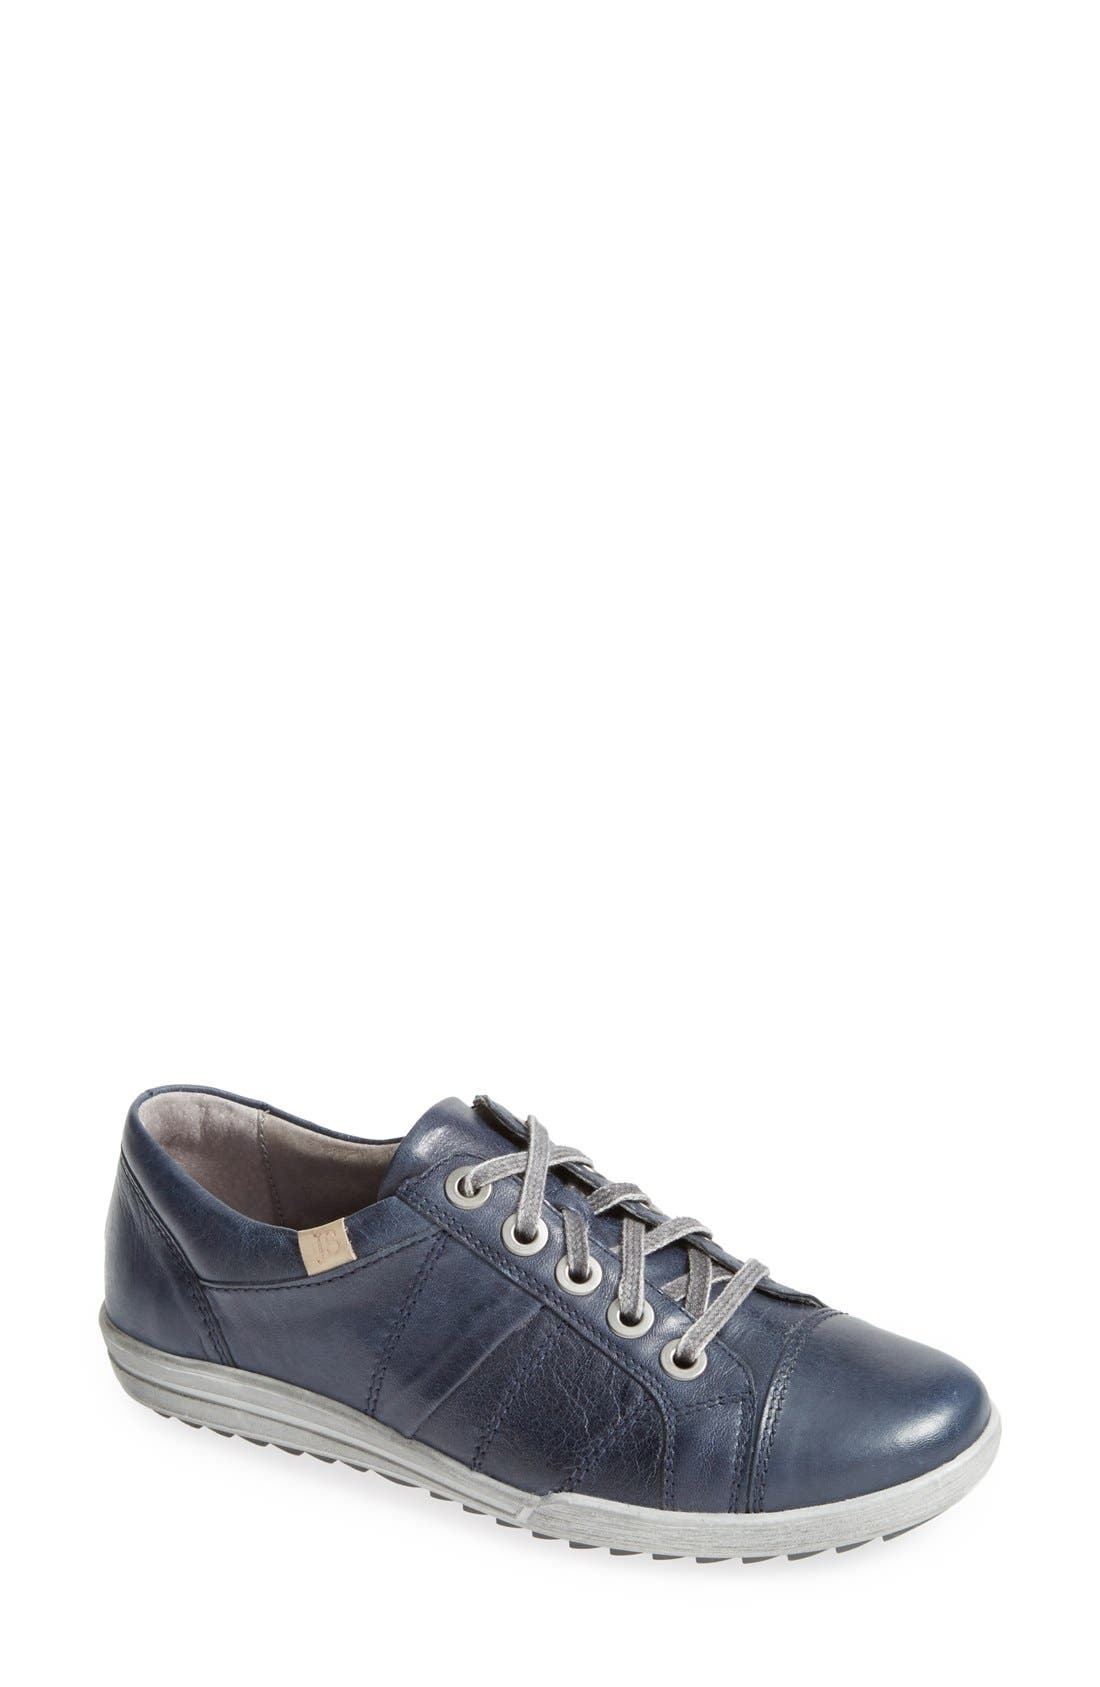 'Dany 05' Leather Sneaker,                             Main thumbnail 7, color,